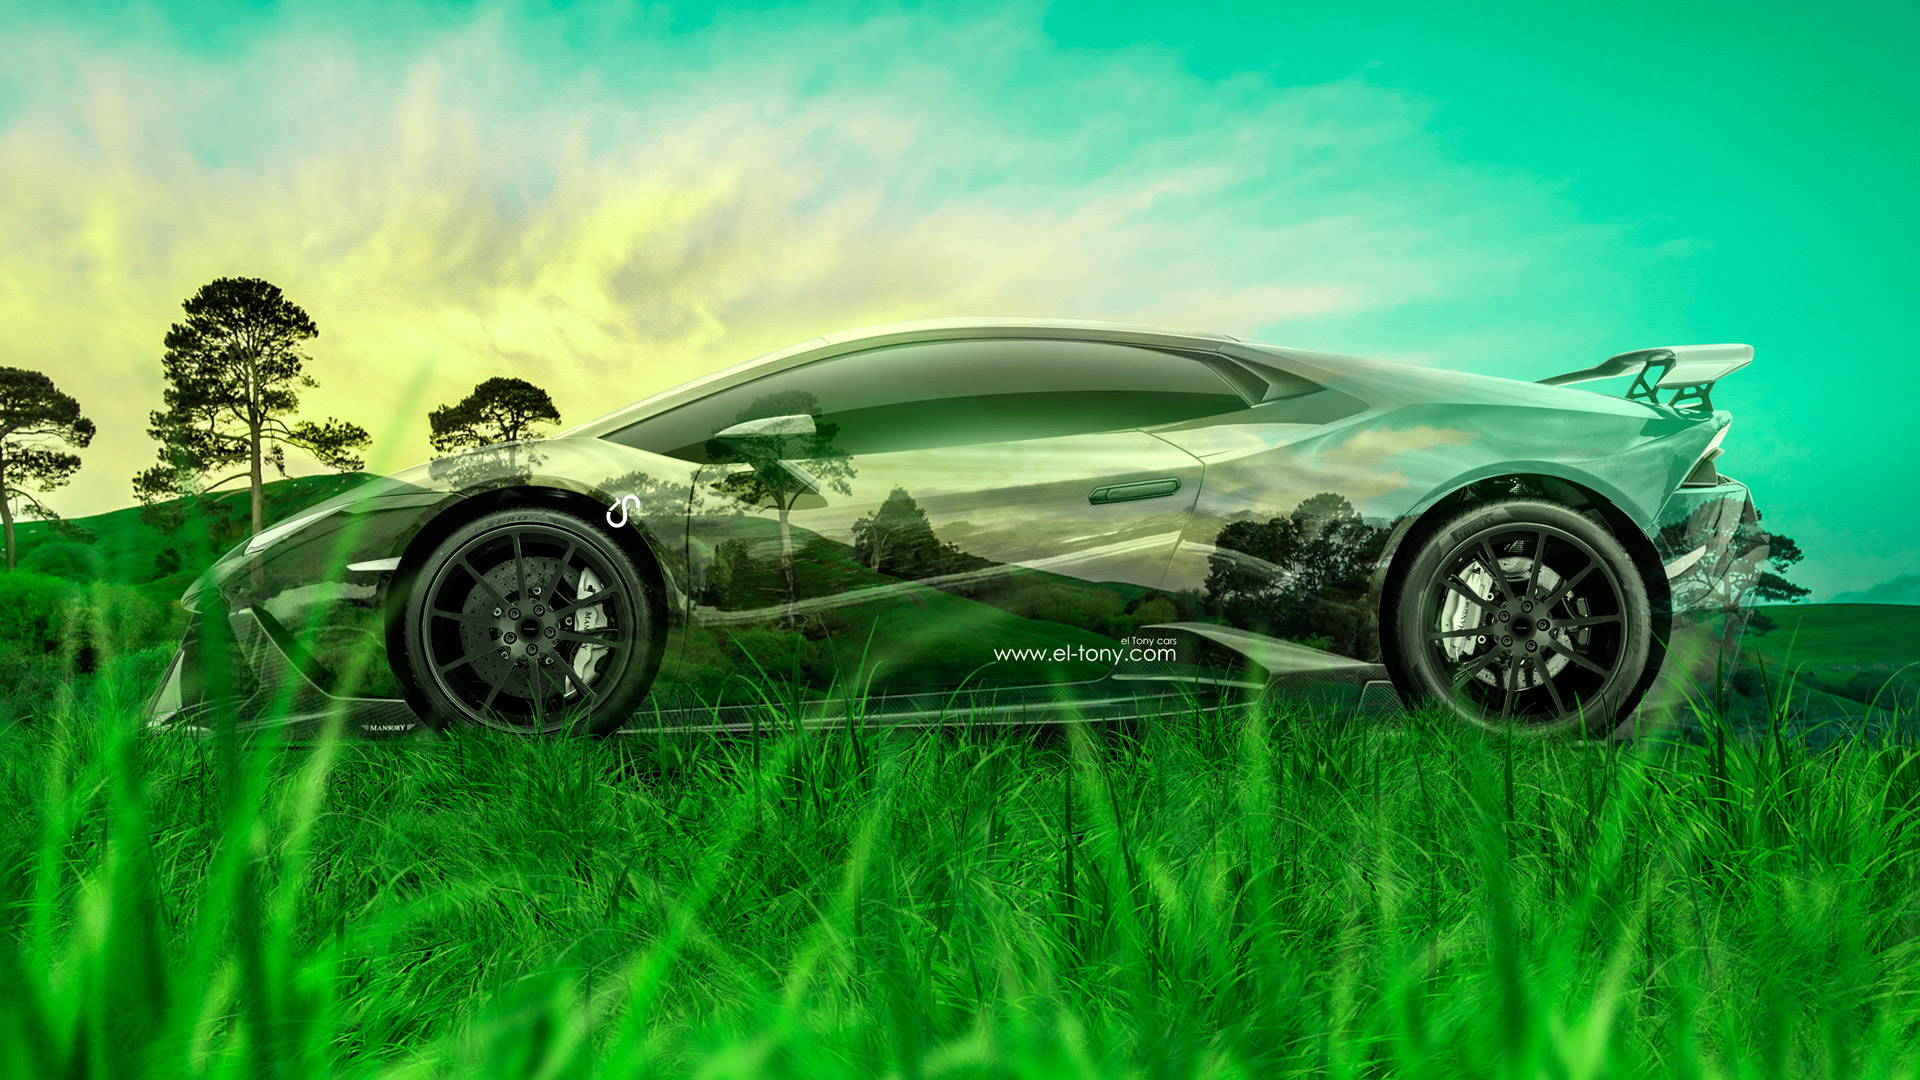 Lamborghini Centenario FrontUp Super Crystal Home Fly Nature Art Car 2017 ·  Lamborghini Huracan Mansory Tuning Side Crystal Nature Car 2015